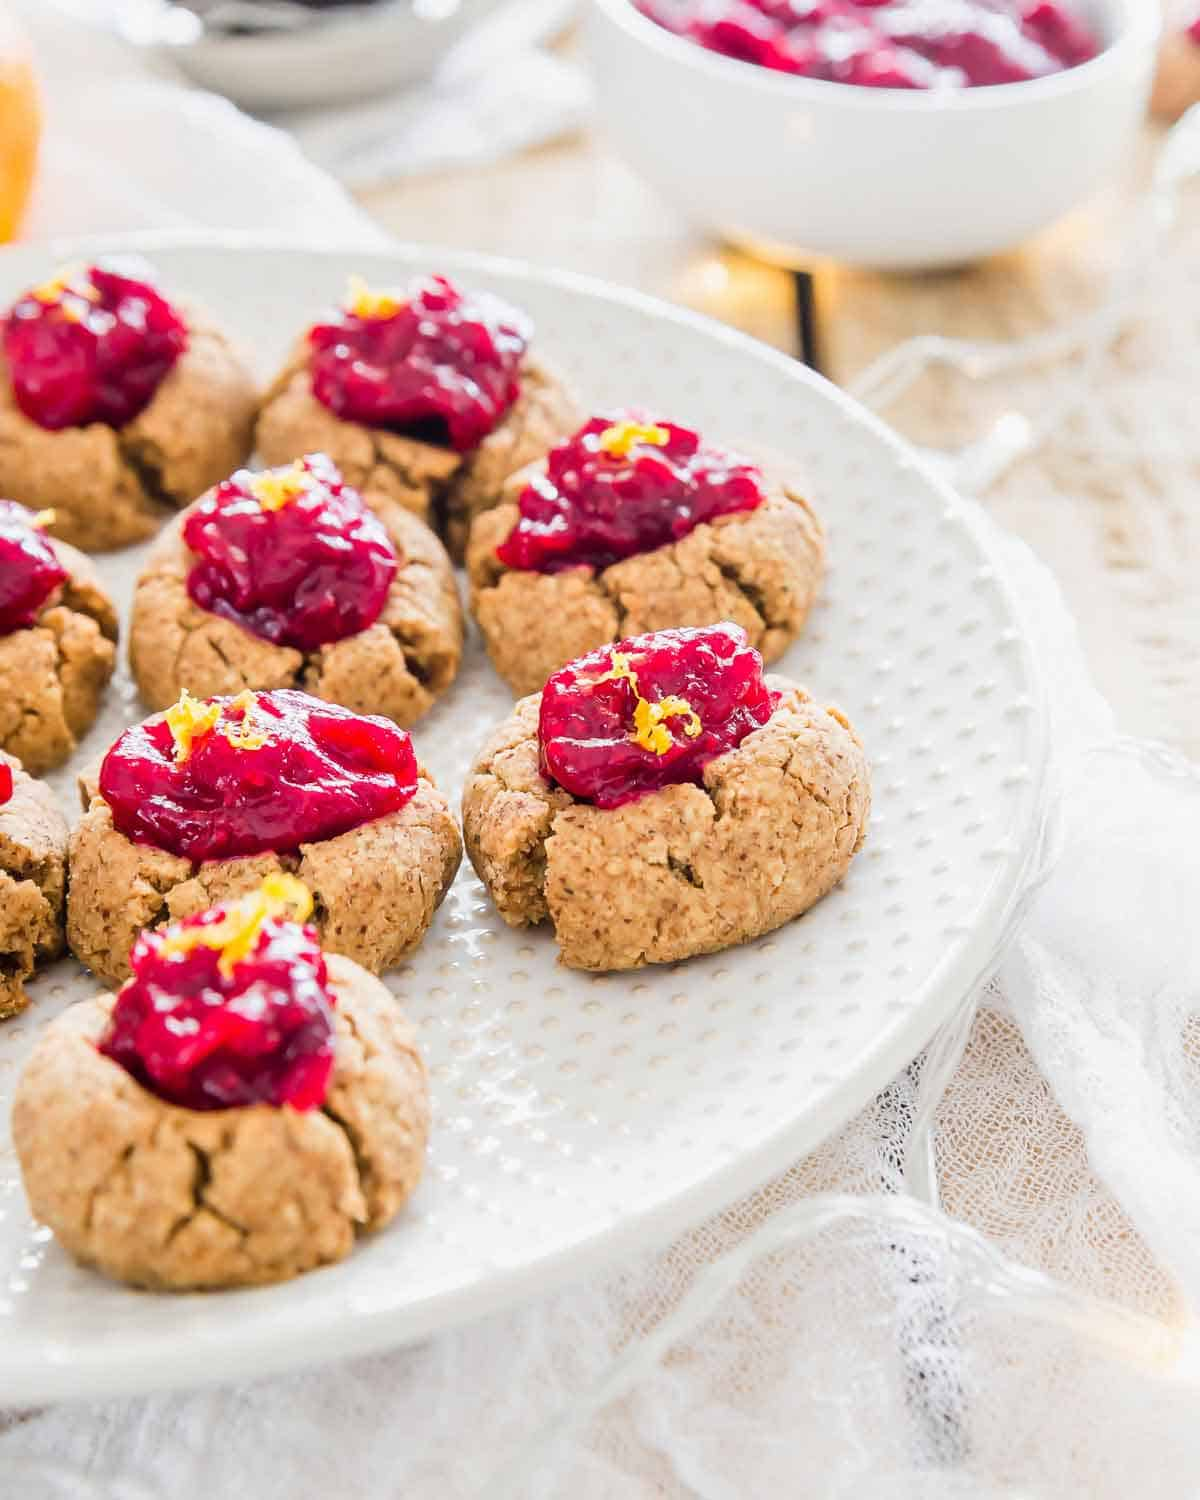 Thumbprint almond pulp cookies filled with an easy cranberry orange fruit jam.